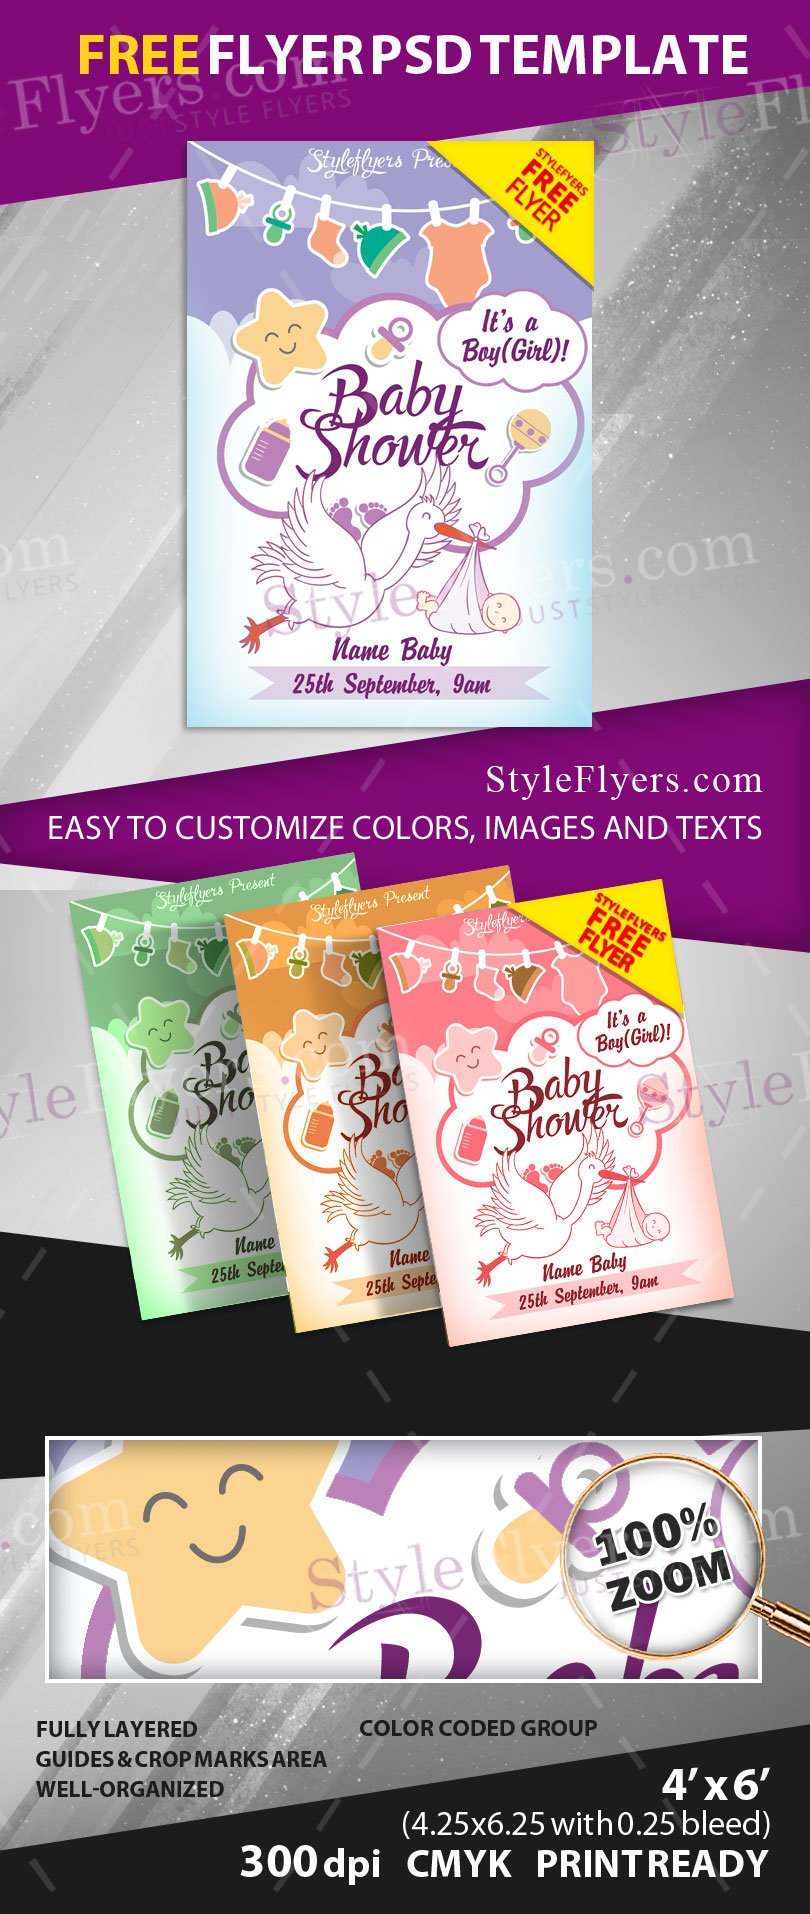 baby shower free psd flyer template free download 11790 styleflyers. Black Bedroom Furniture Sets. Home Design Ideas